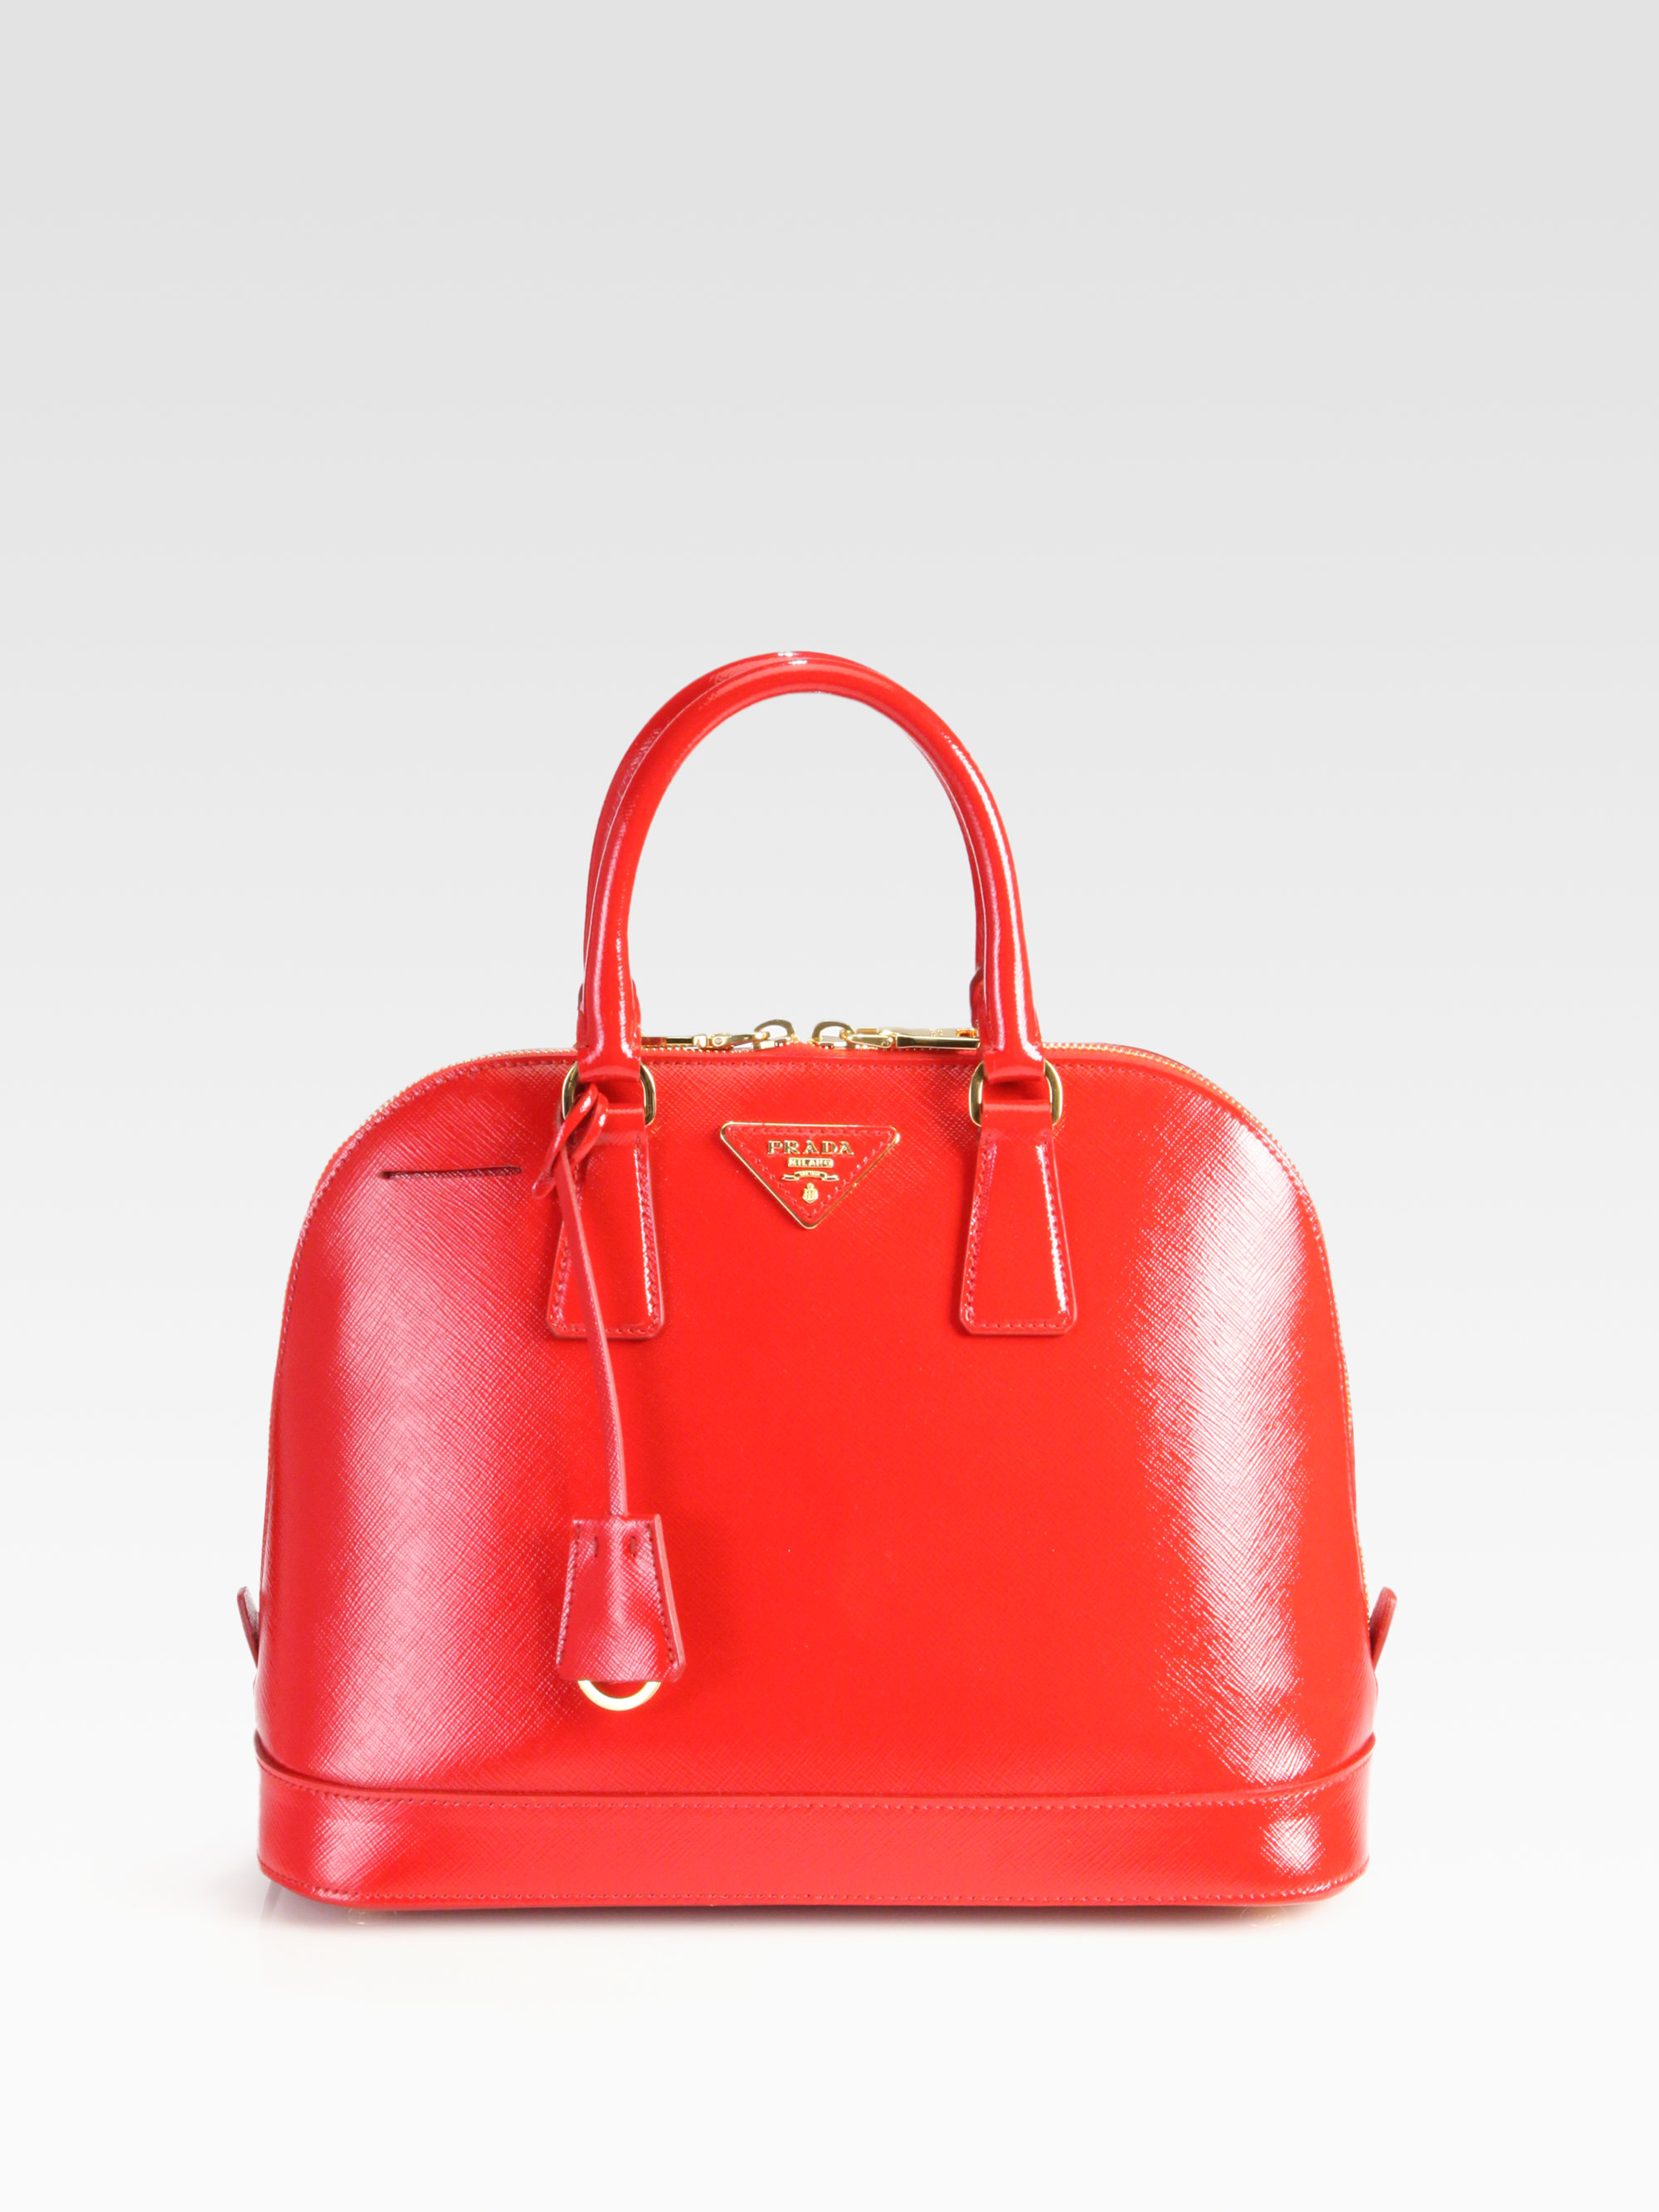 7c8716d48a77 ... where to buy lyst prada saffiano vernice bugatti top handle bag in red  fc85a 4607e